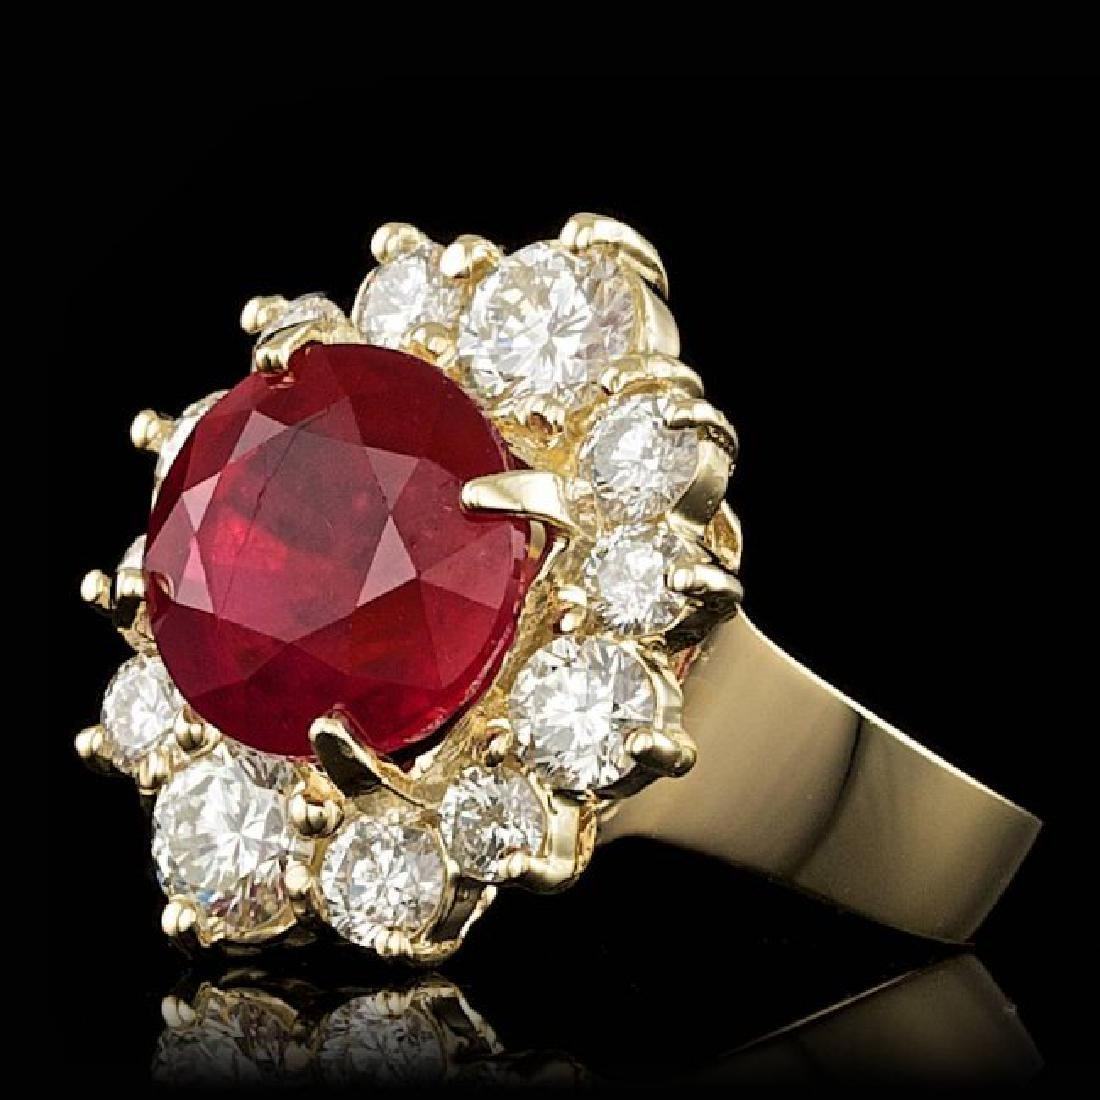 14k Yellow Gold 5.50ct Ruby 1.85ct Diamond Ring - 2